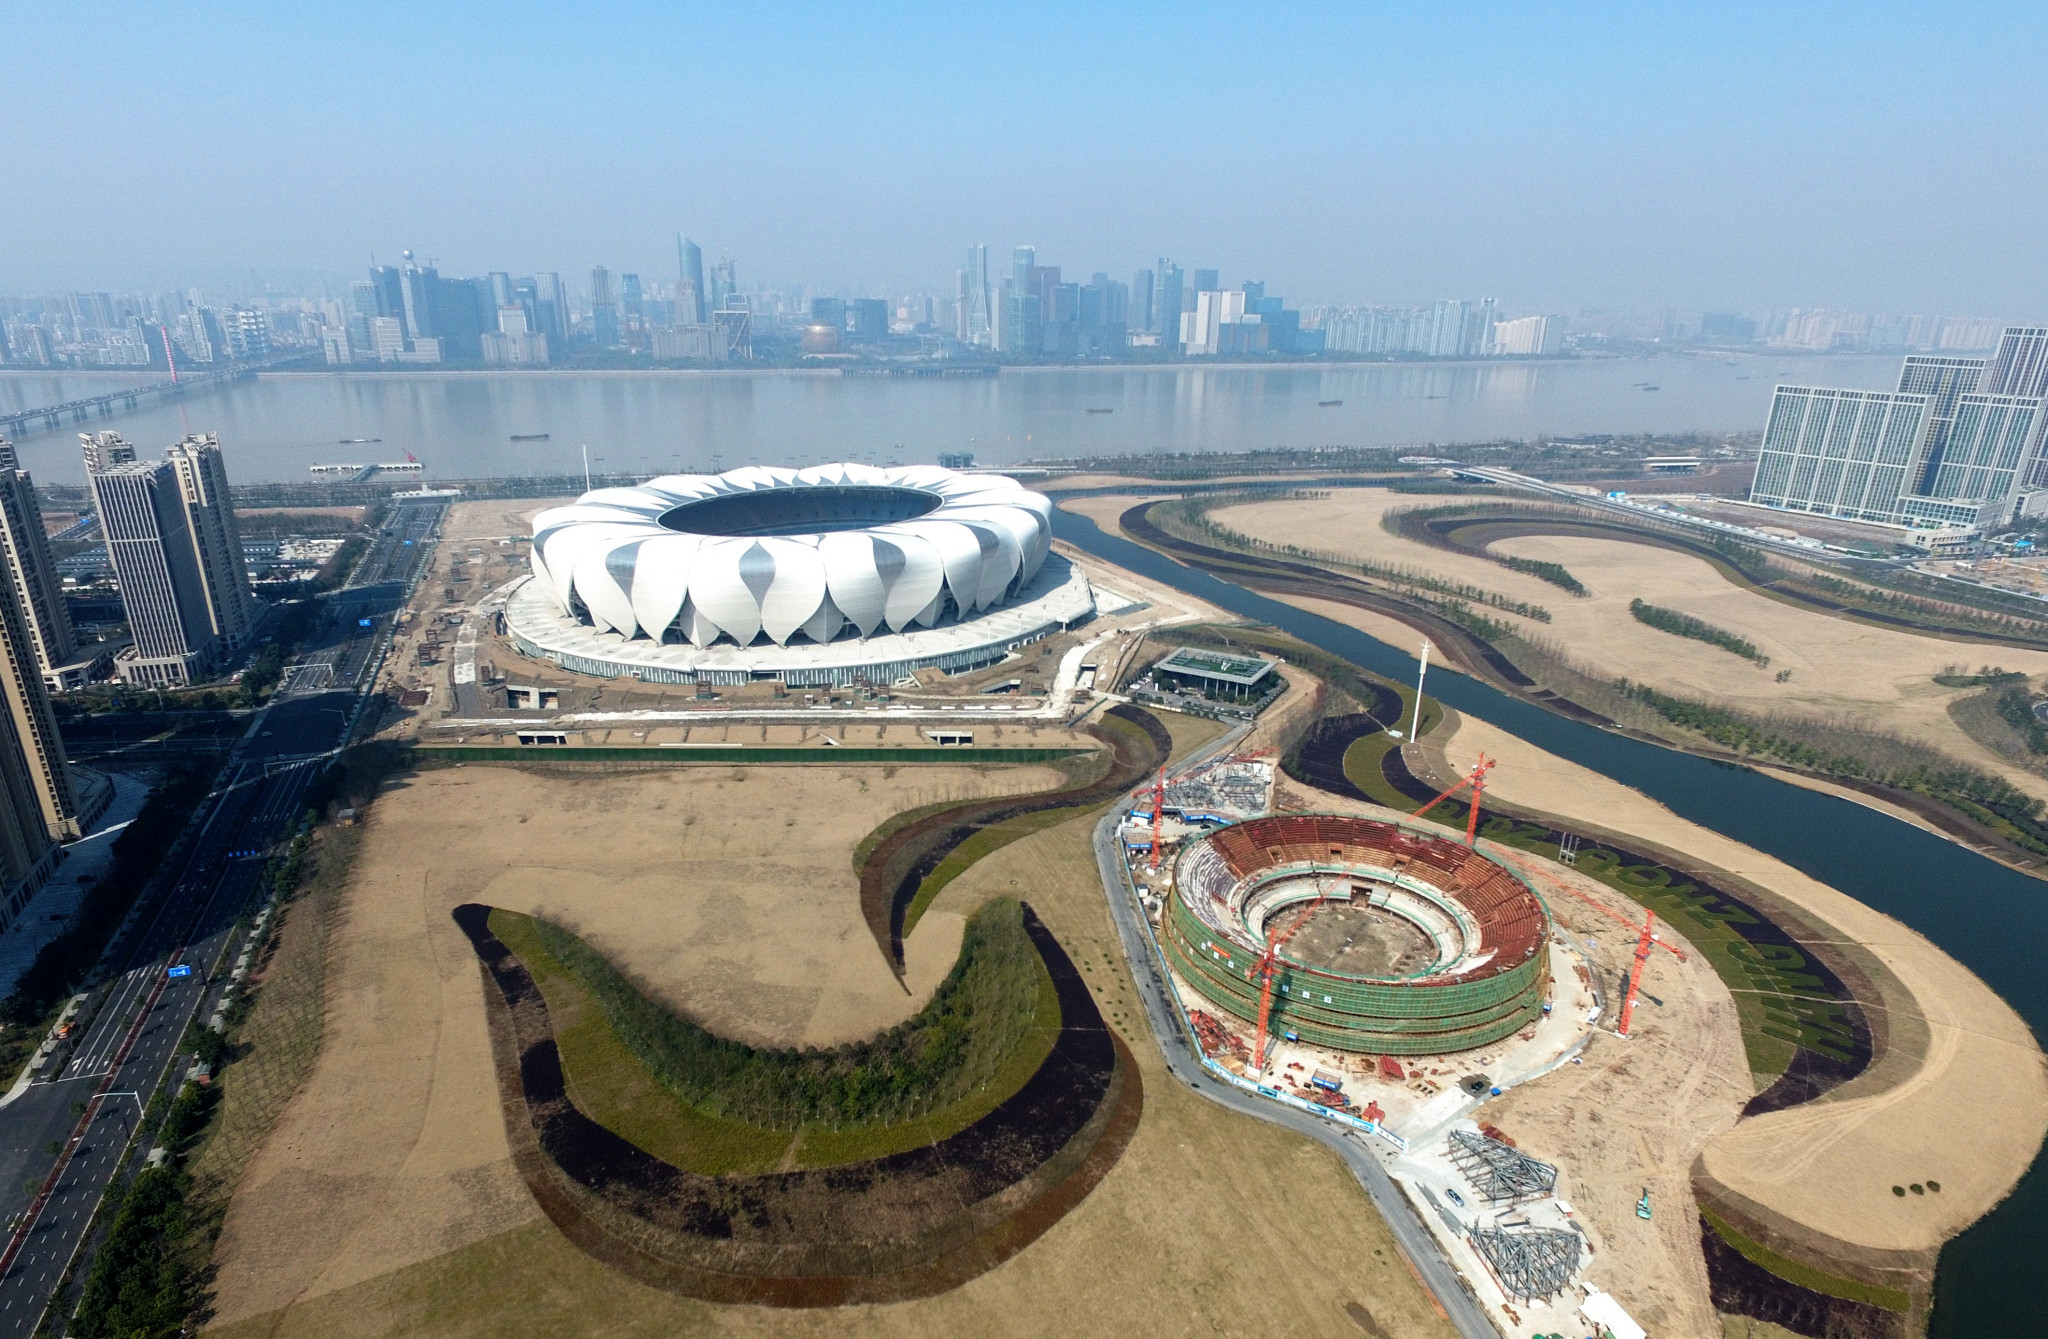 Hangzhou will host the next Asian Games in 2022 ©Getty Images